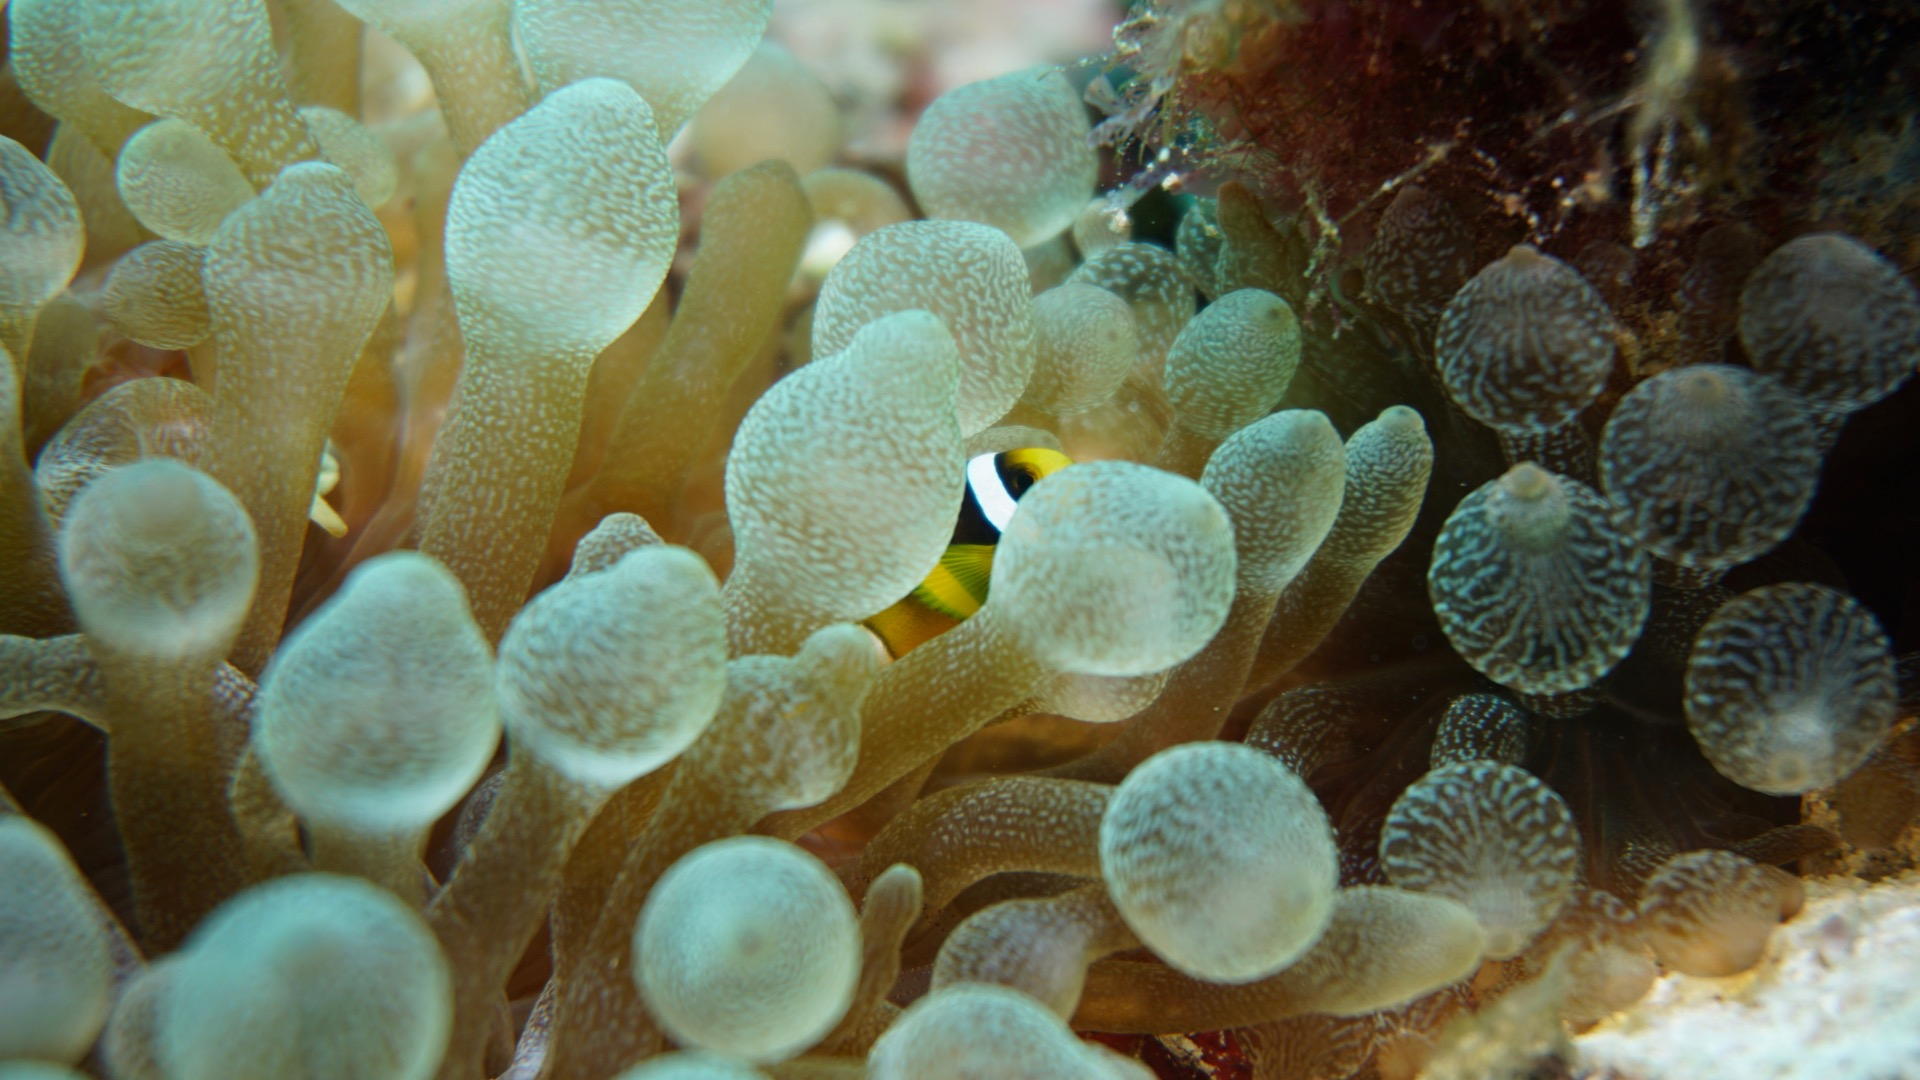 Small Anemonefish Maldives Liveaboard Divemood